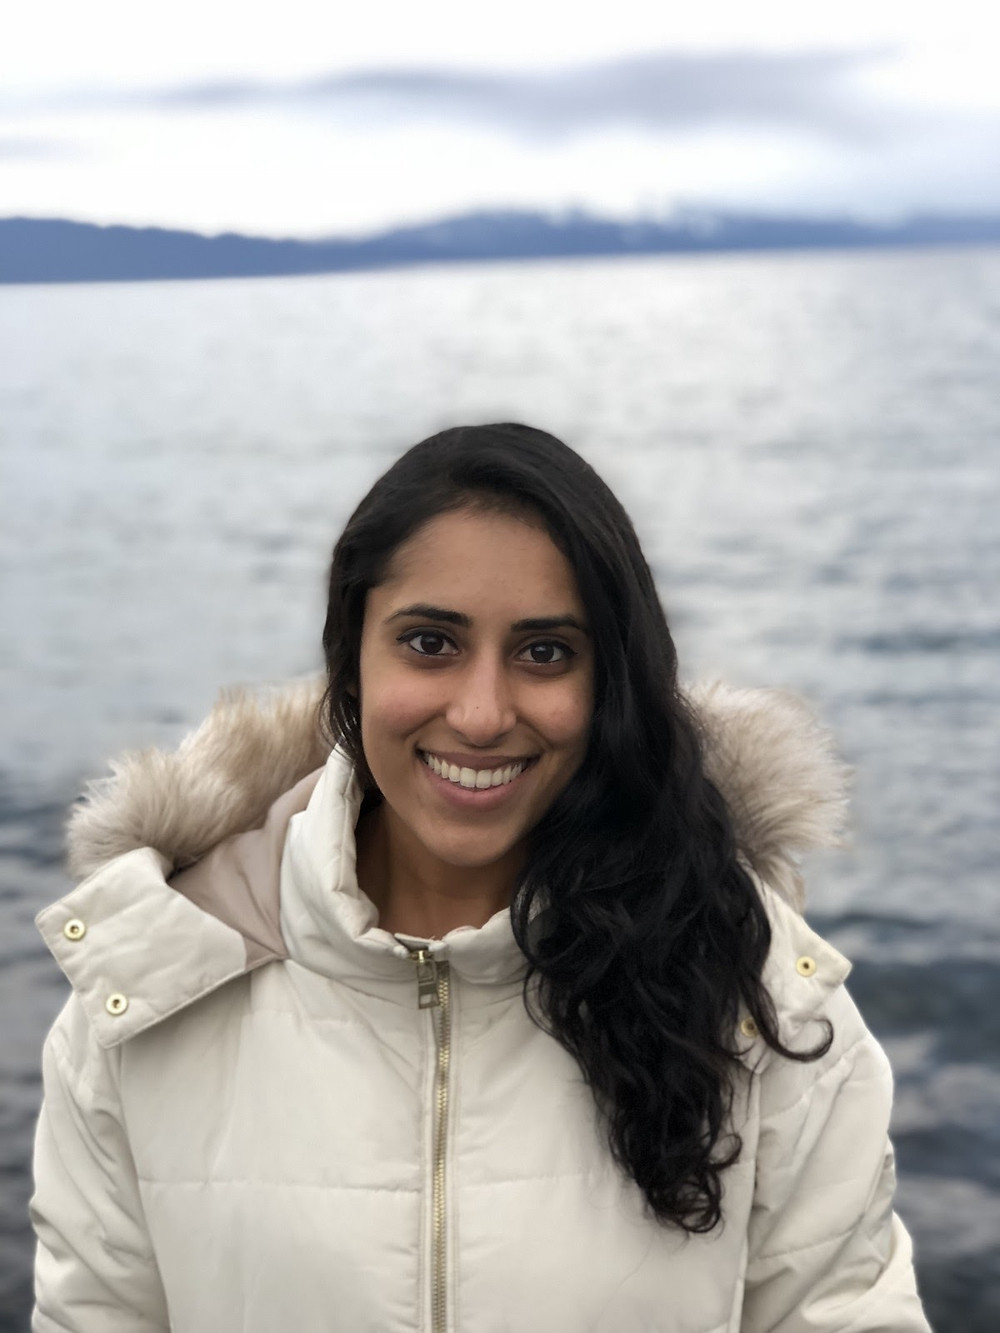 Guest blogger Ashima smiles for the camera wearing a white parka in front of a beautiful body of water